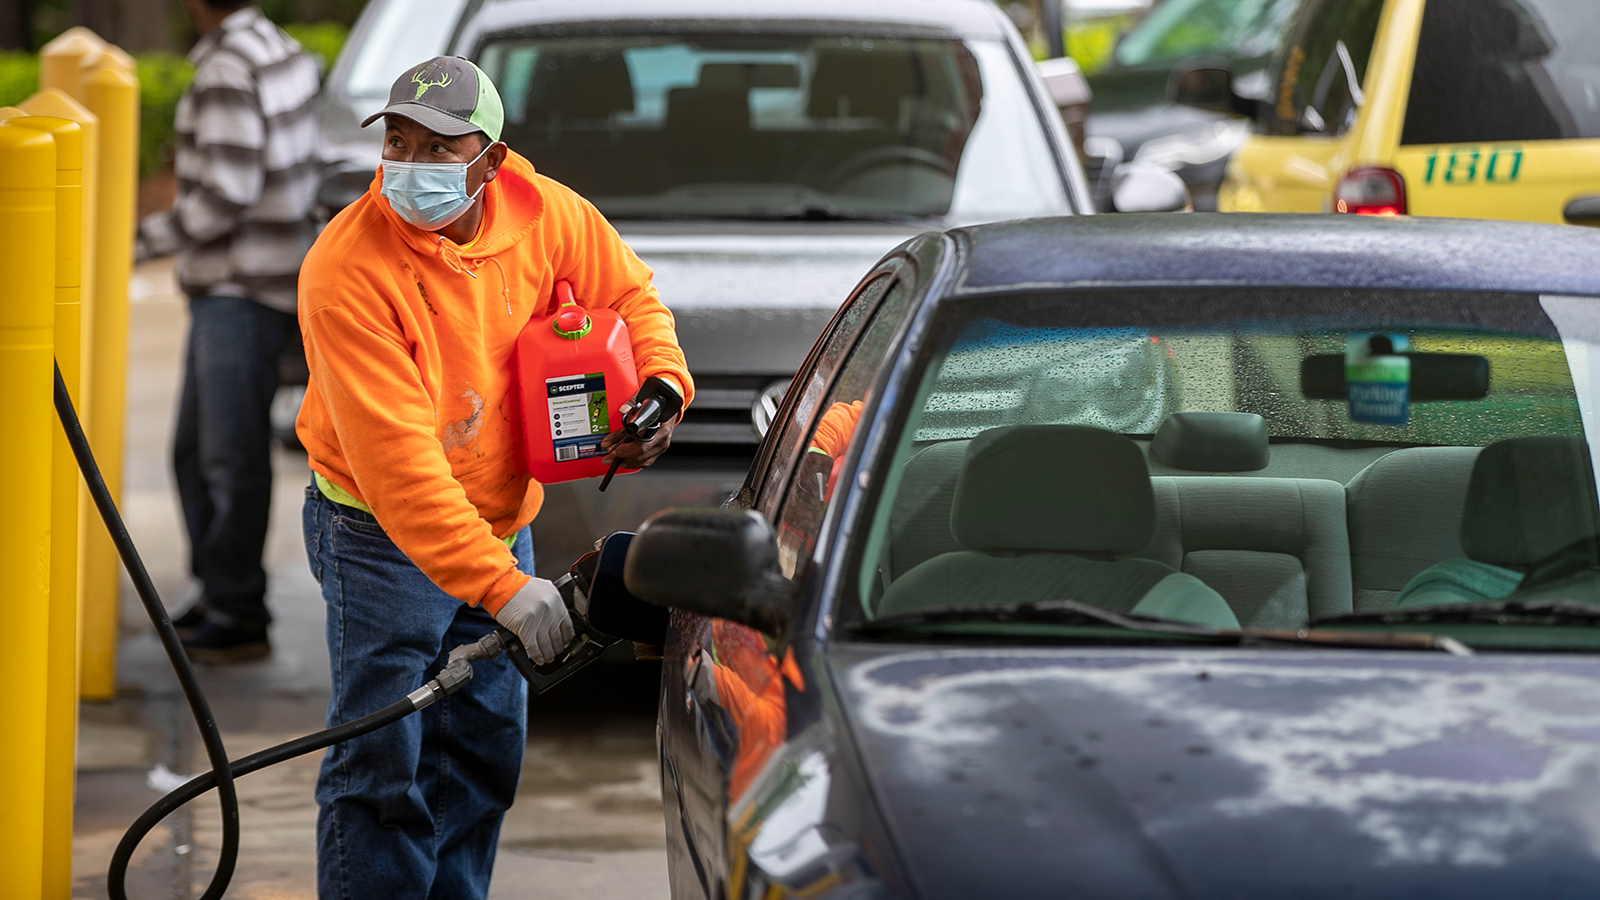 A customer fills up his car and gas container with fuel at the Circle K in Raleigh, North Carolina, on Wednesday.